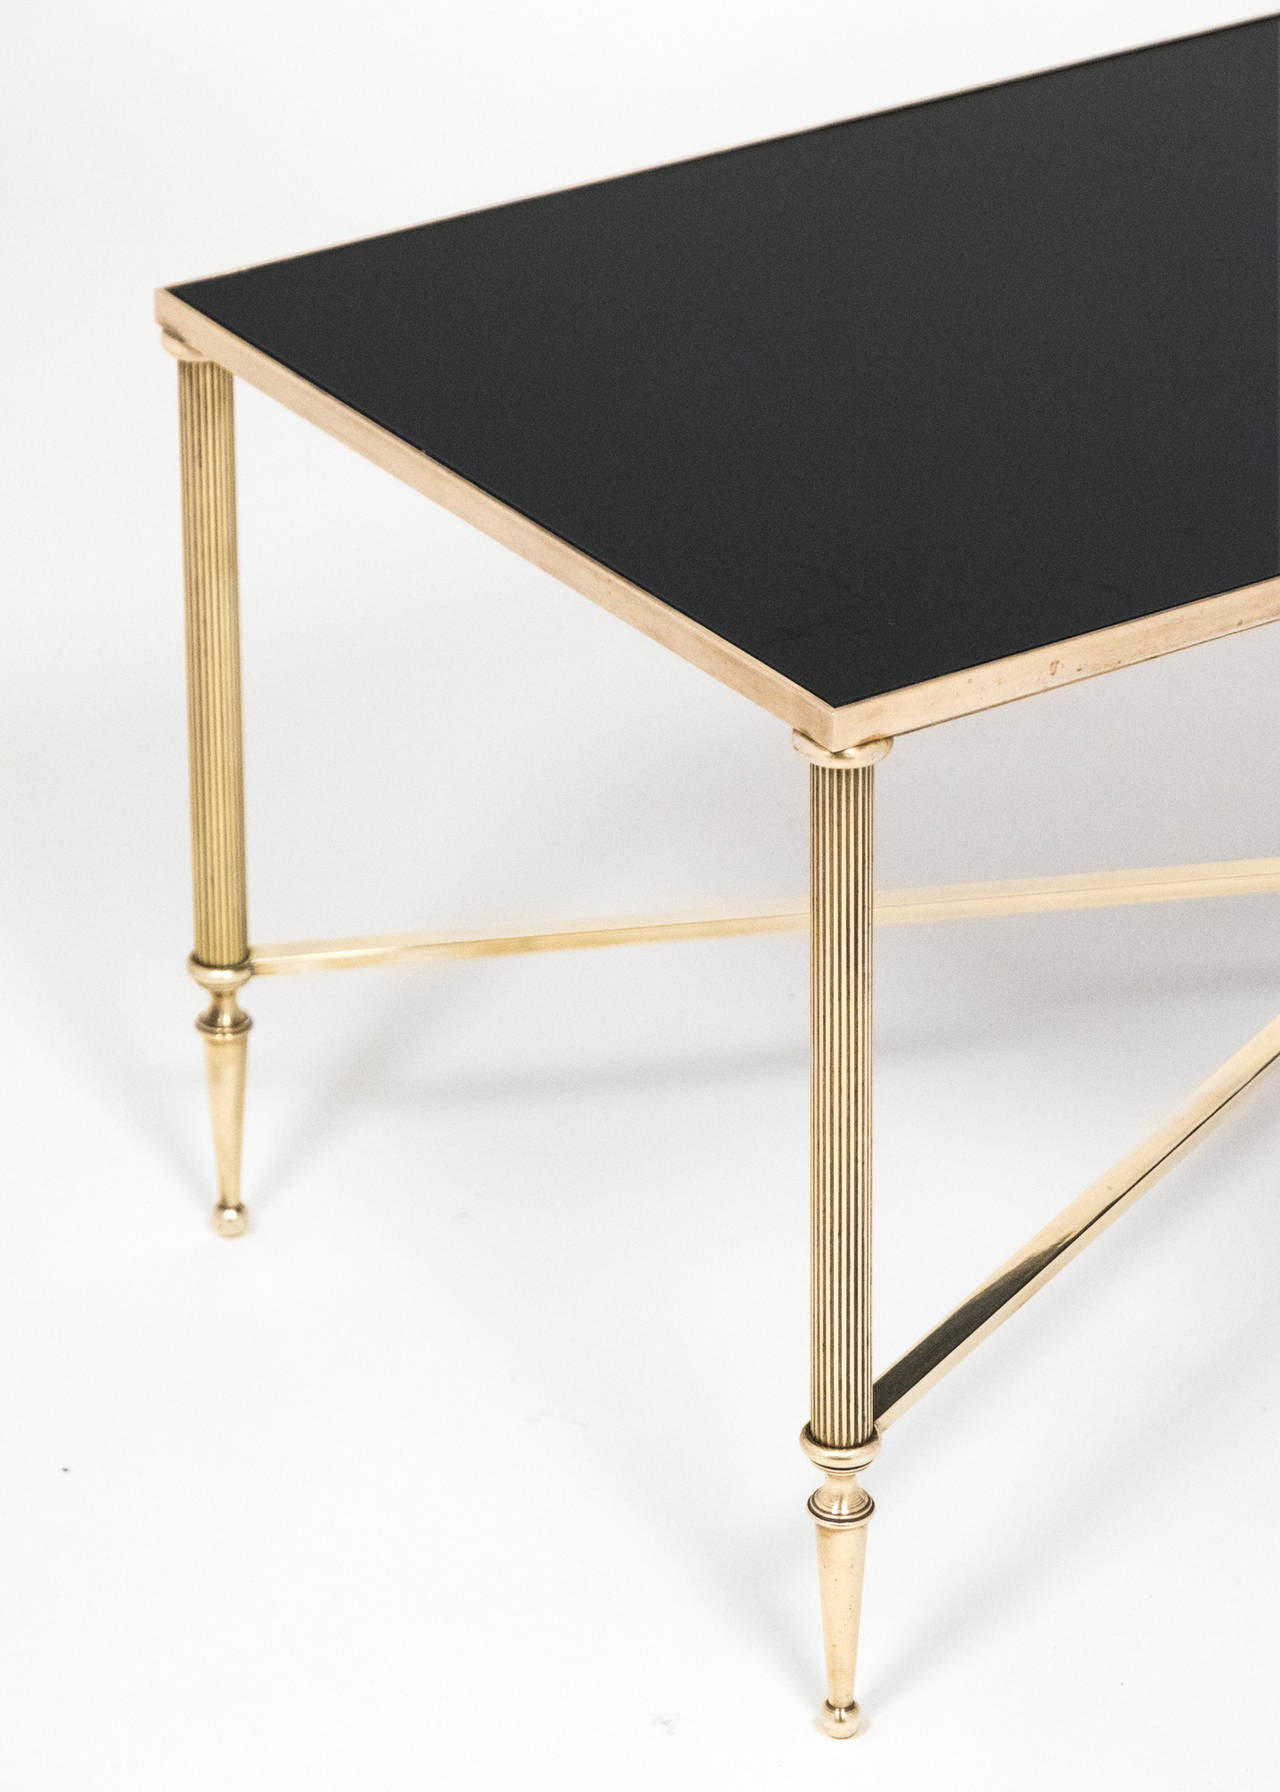 French vintage black glass and brass coffee table at 1stdibs for Coffee tables black glass